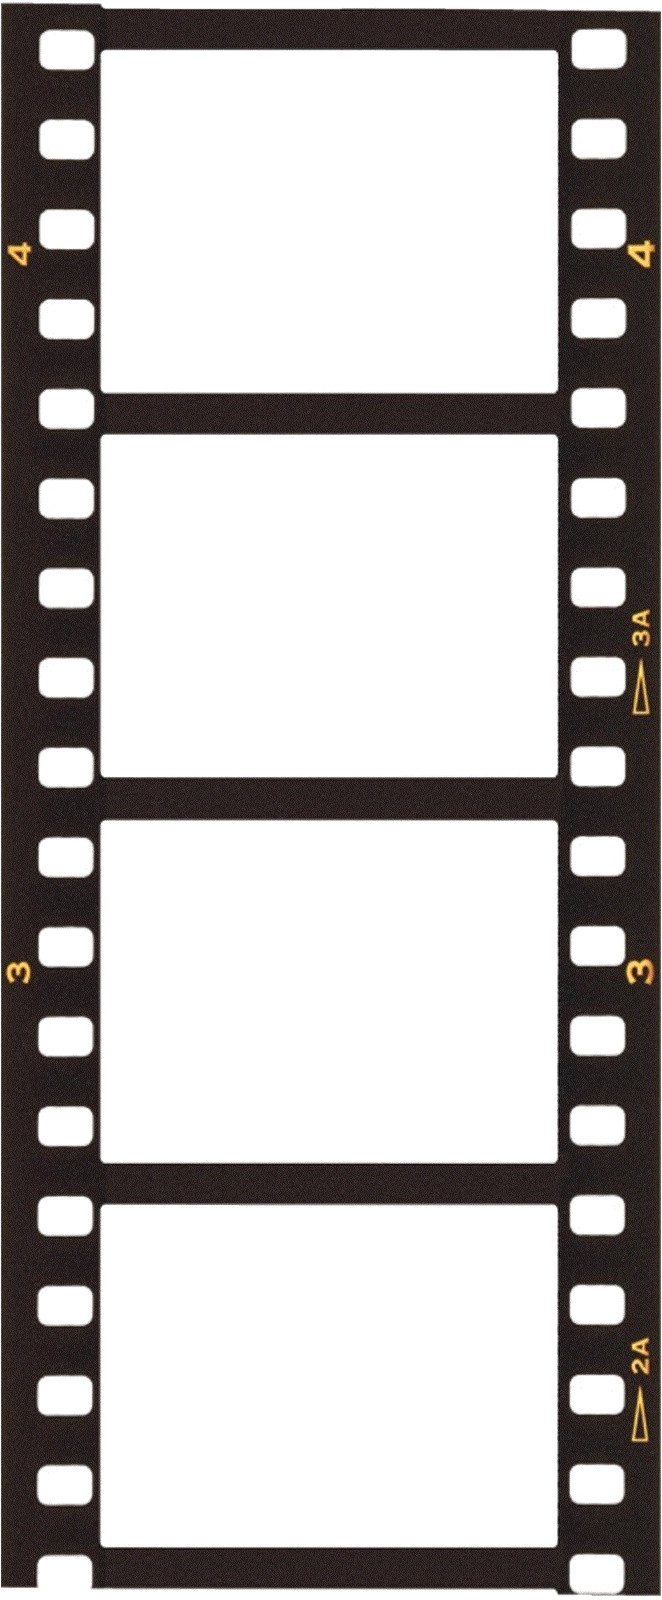 free photo booth strip templates